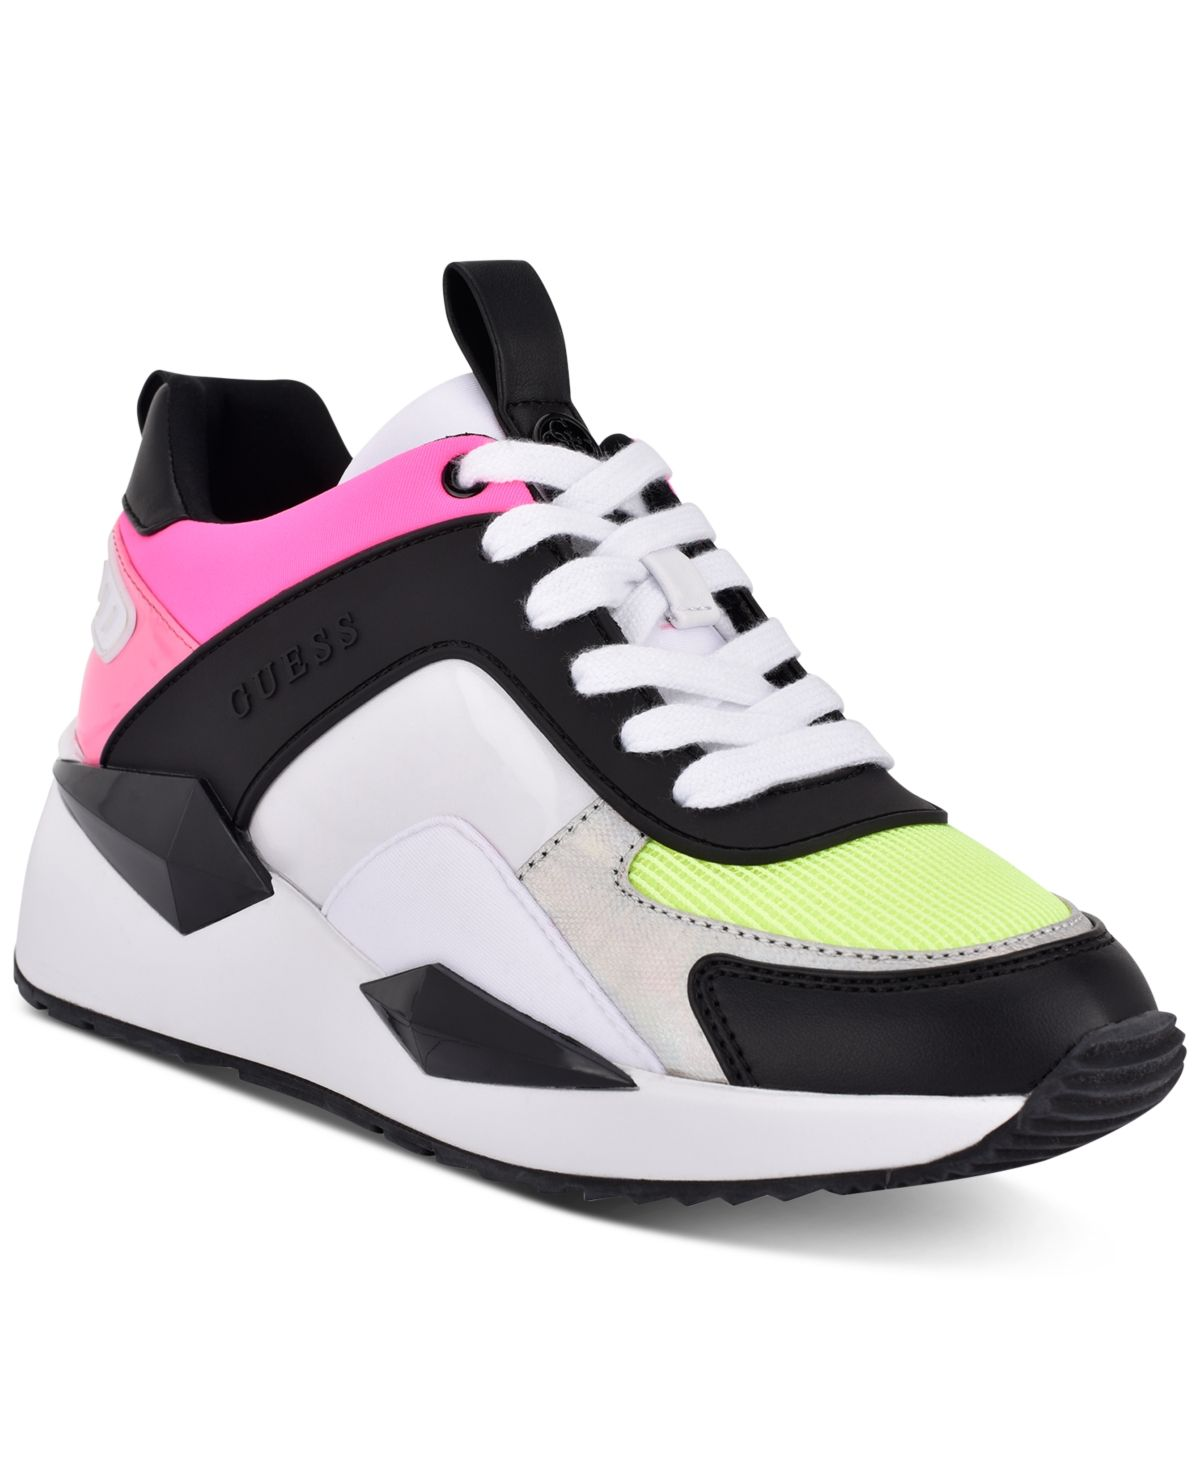 Guess Women's Typical Lace Up Sneakers Neon in 2020